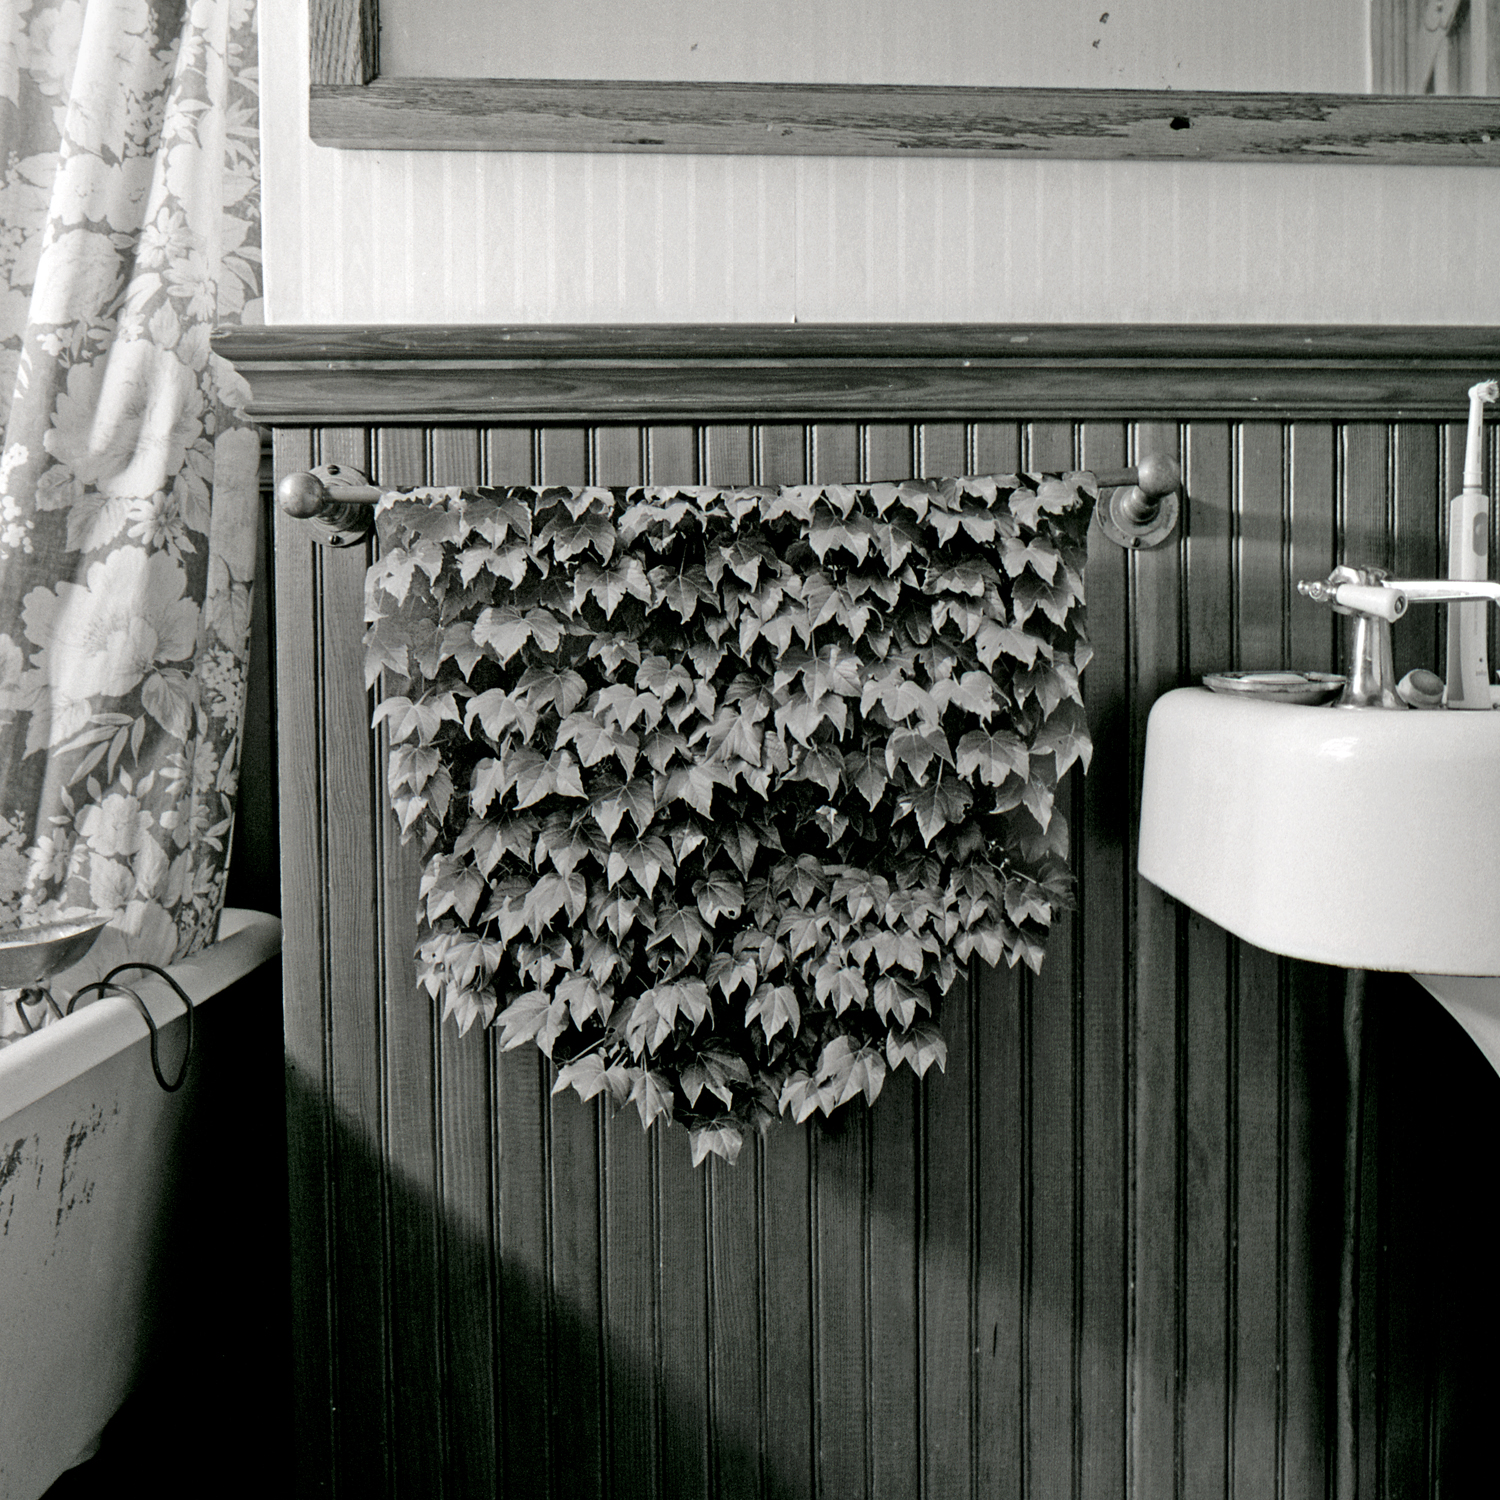 Bathroom, 2006, archival pigment print on paper